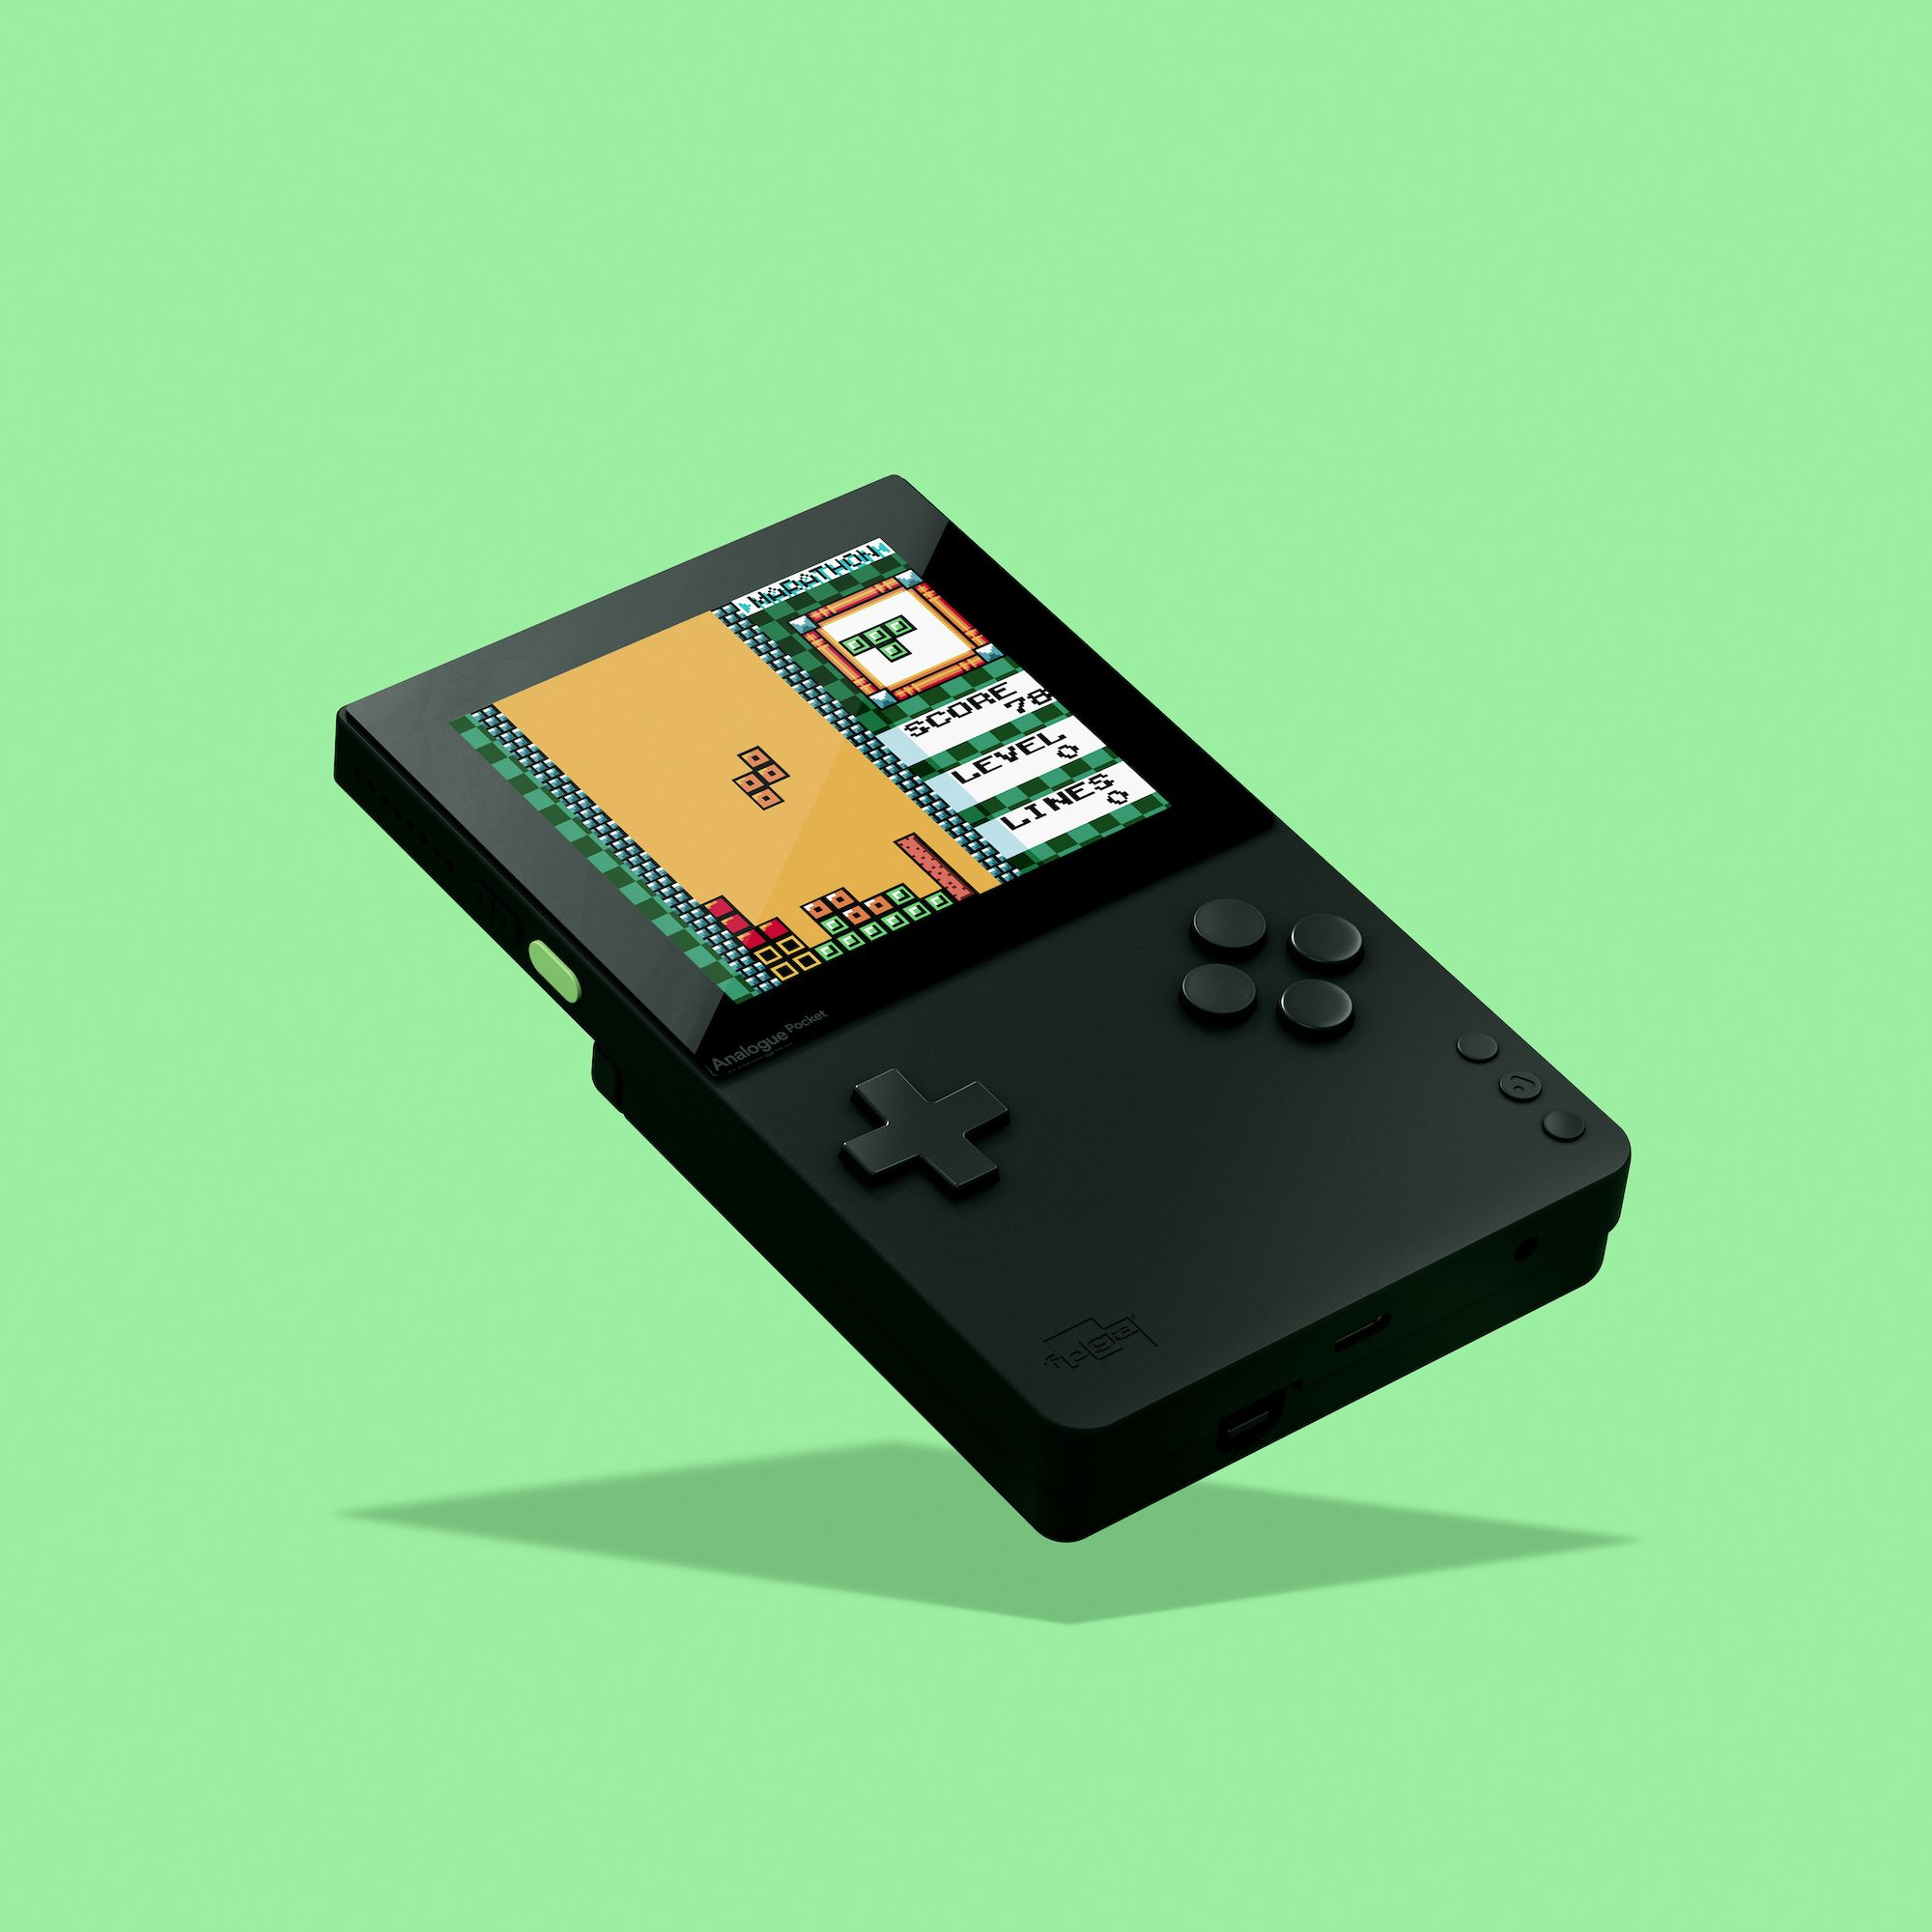 The Analogue Pocket Is the Next-Gen Game Boy You Never Knew You Wanted